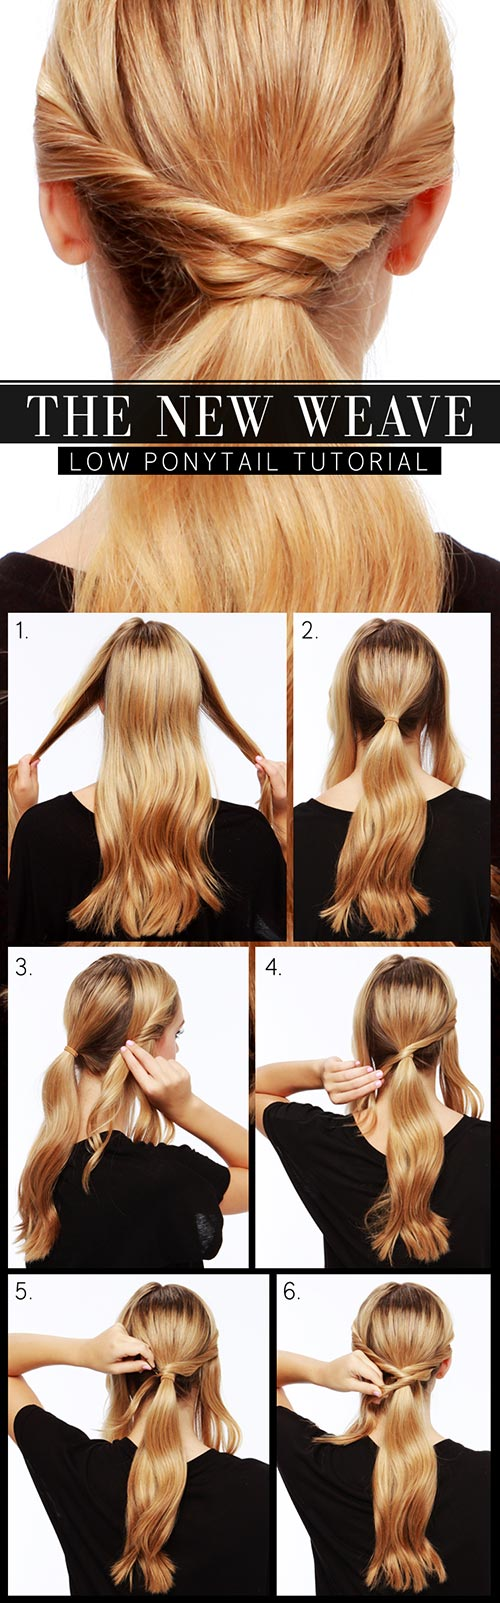 Strange Simple Hairstyle Tutorials For Every Occasion Beauty Tips Hair Care Short Hairstyles For Black Women Fulllsitofus